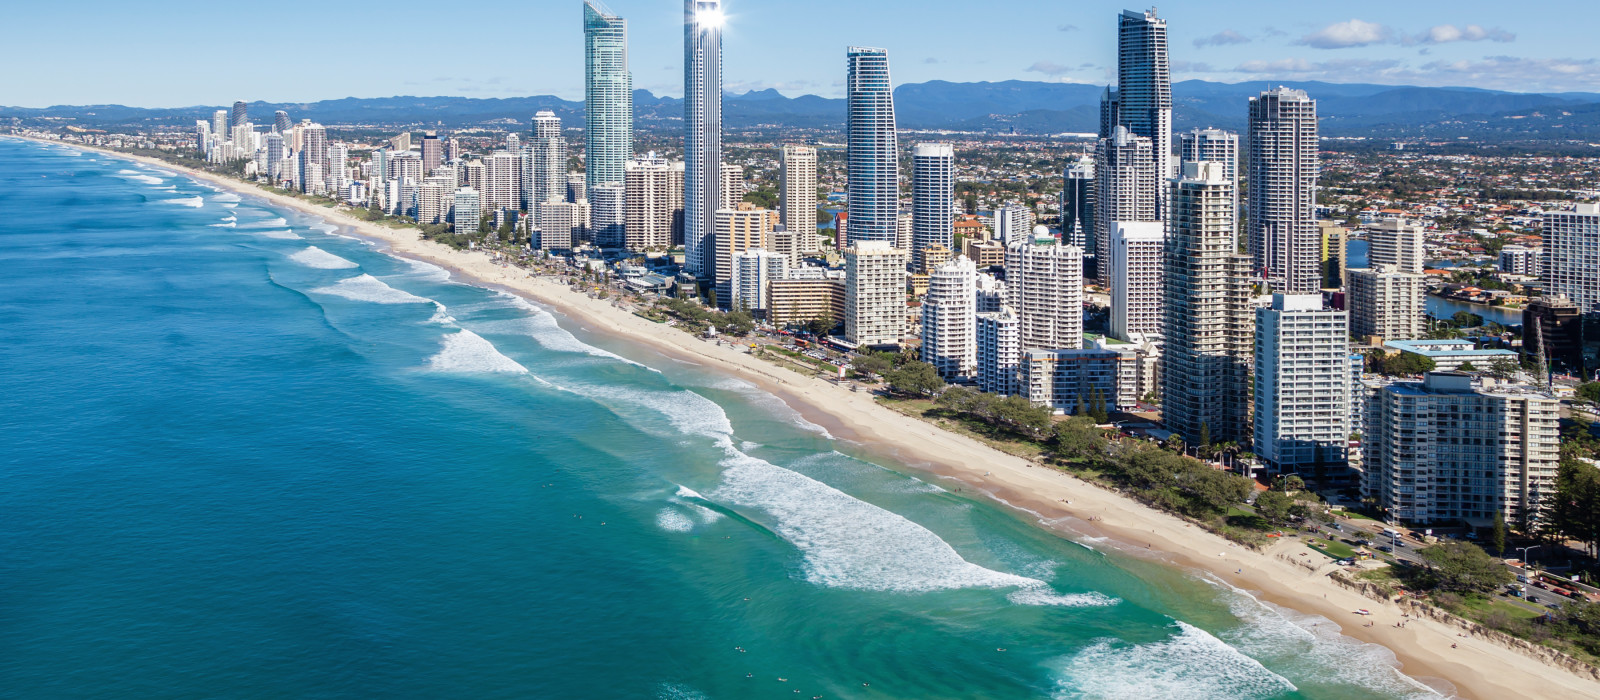 An aerial view of Surfers Paradise on the Gold Coast, Australia oceania tours